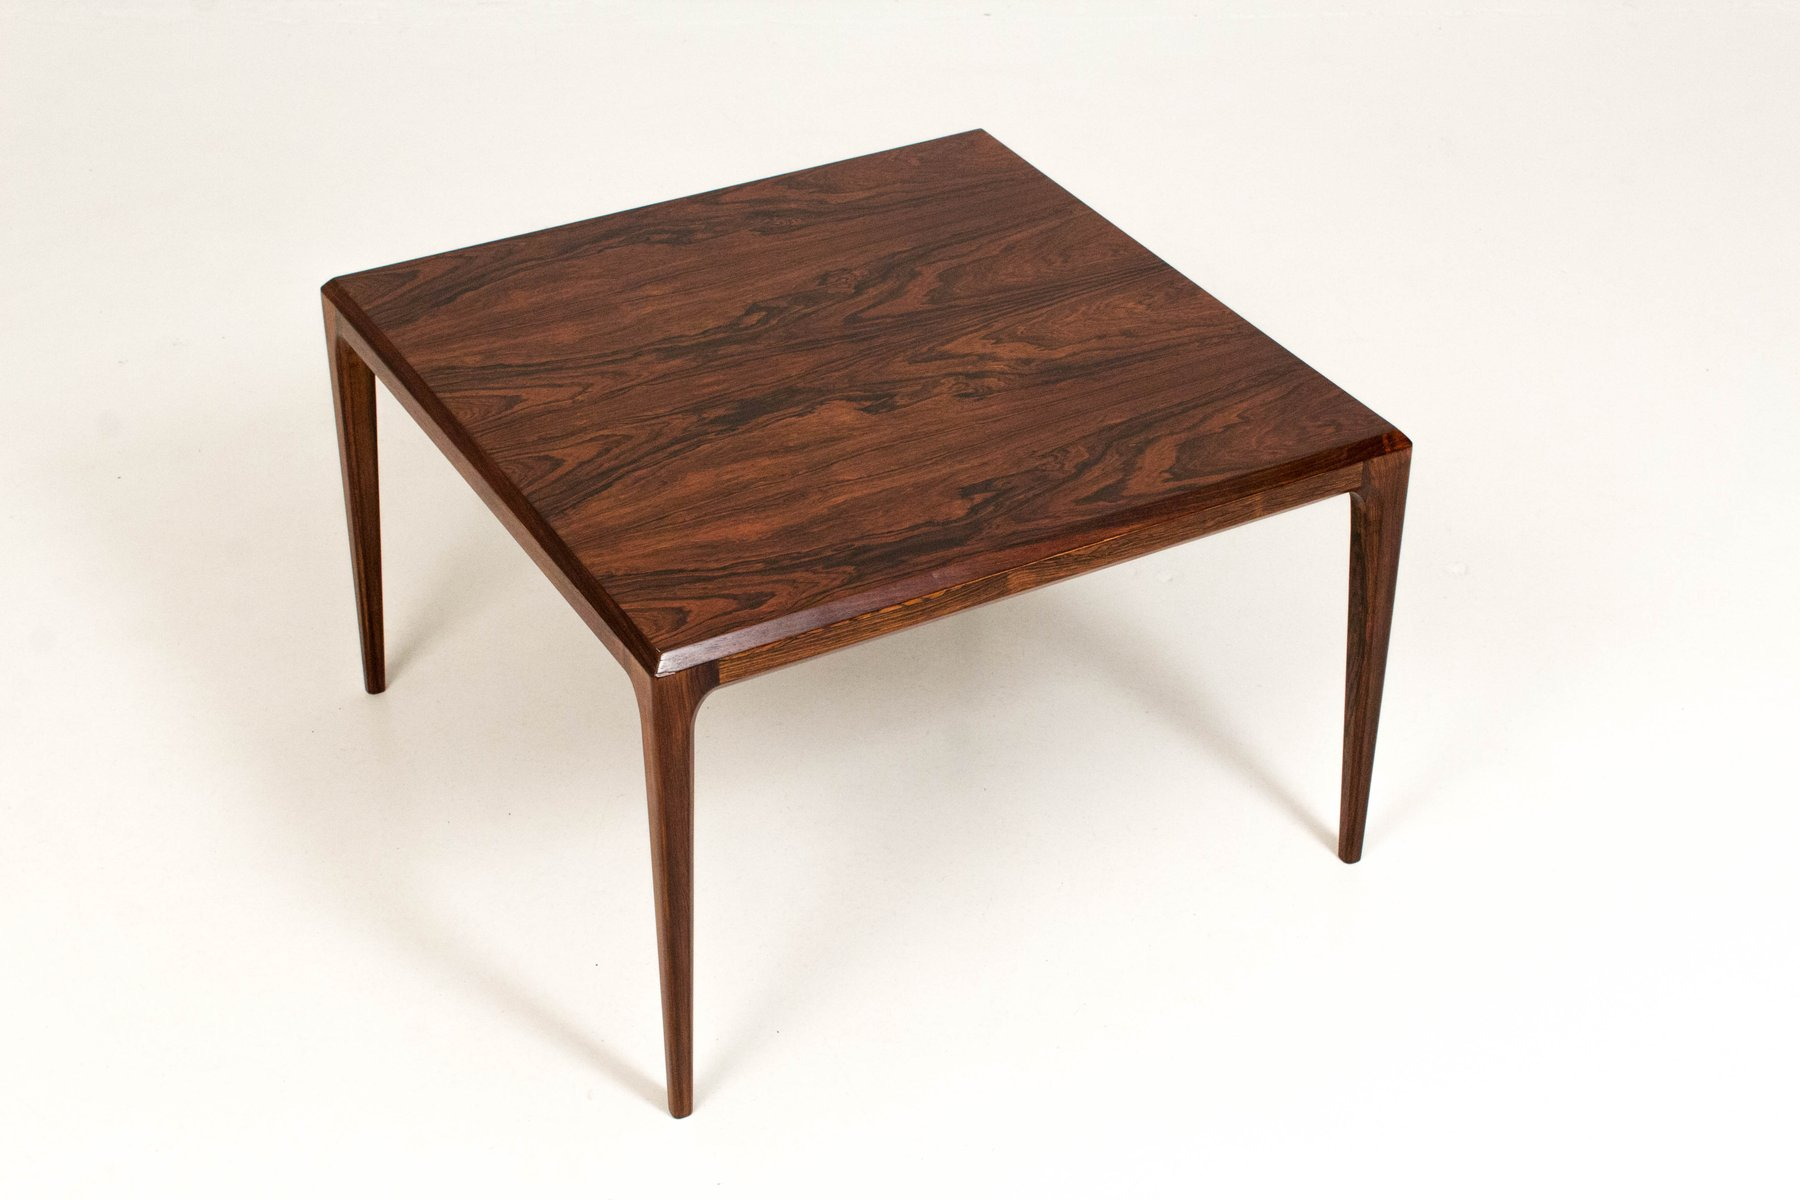 Danish Rosewood Coffee Table By Johannes Andersen For Silkeborg 1960s For Sale At Pamono